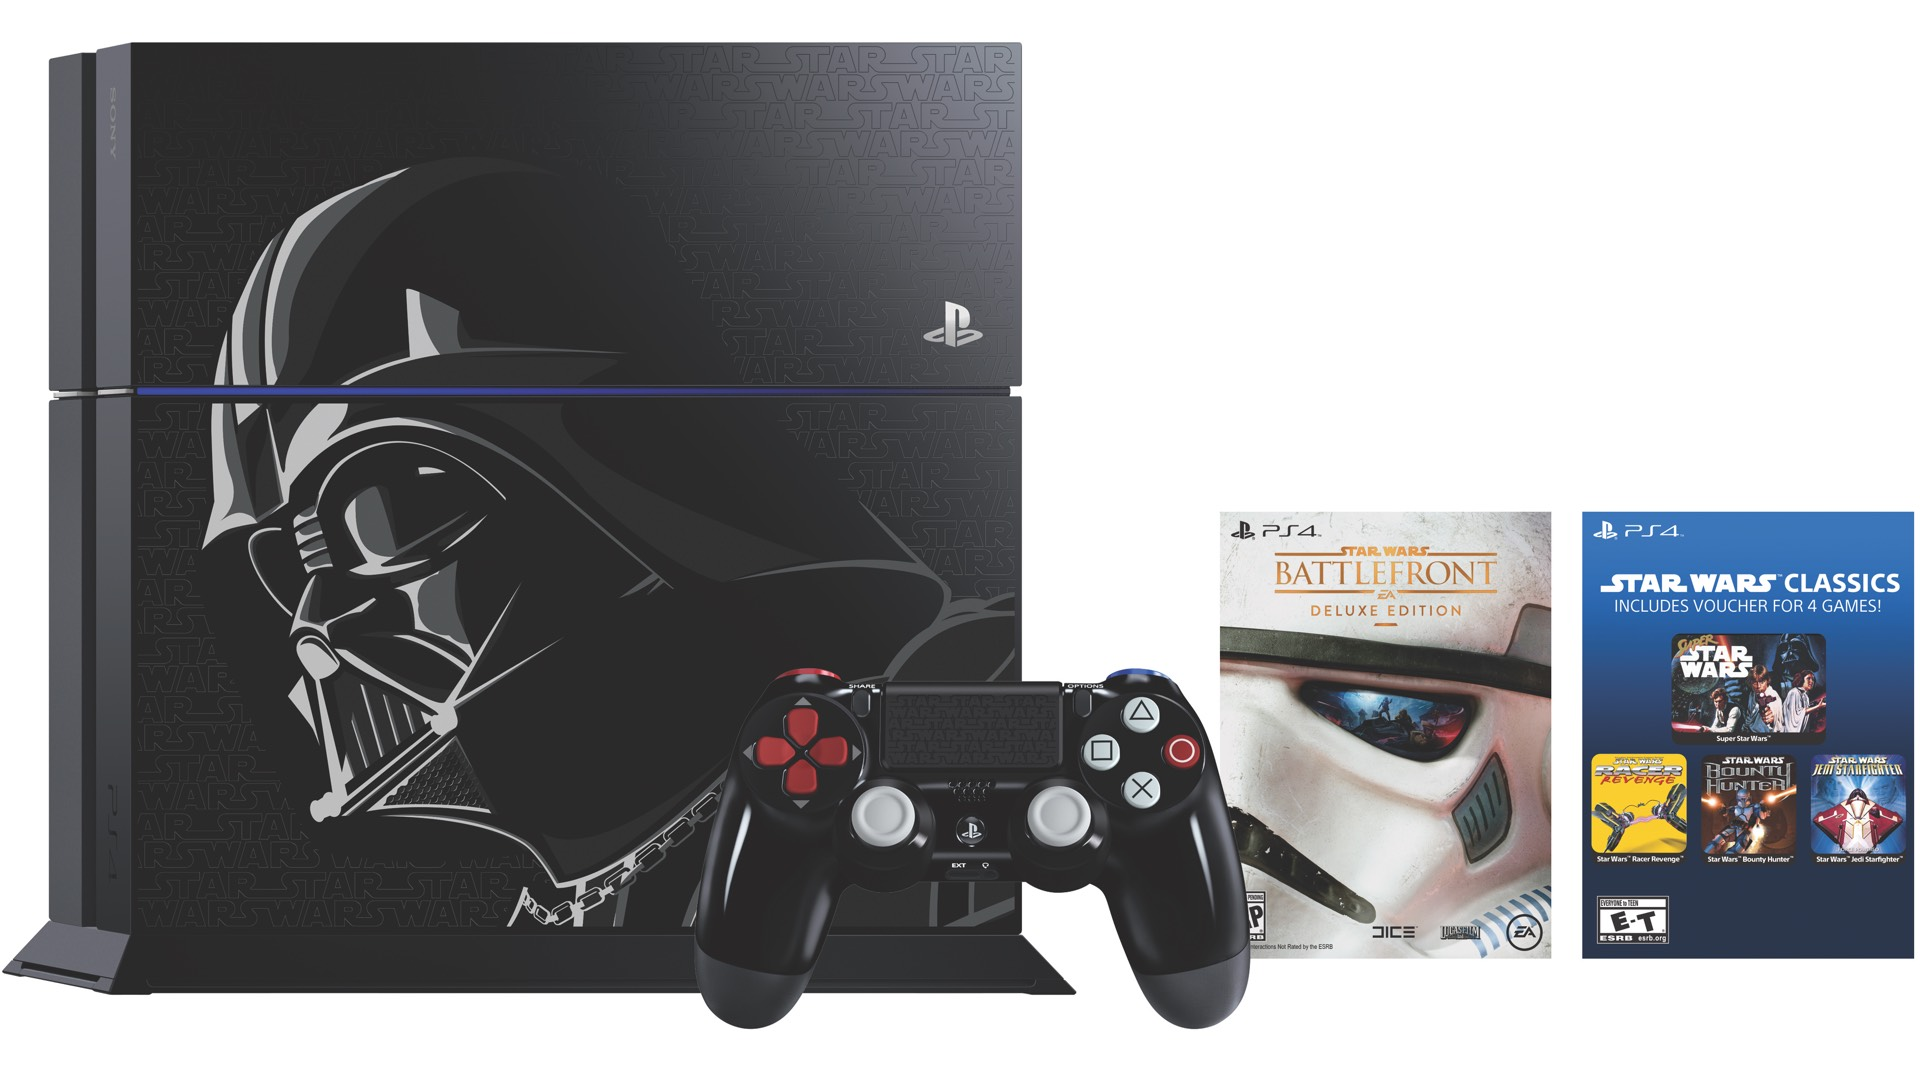 These Are the Star Wars Battlefront PS4 Bundles, Darth Vader Controller Can Be Bought Separately